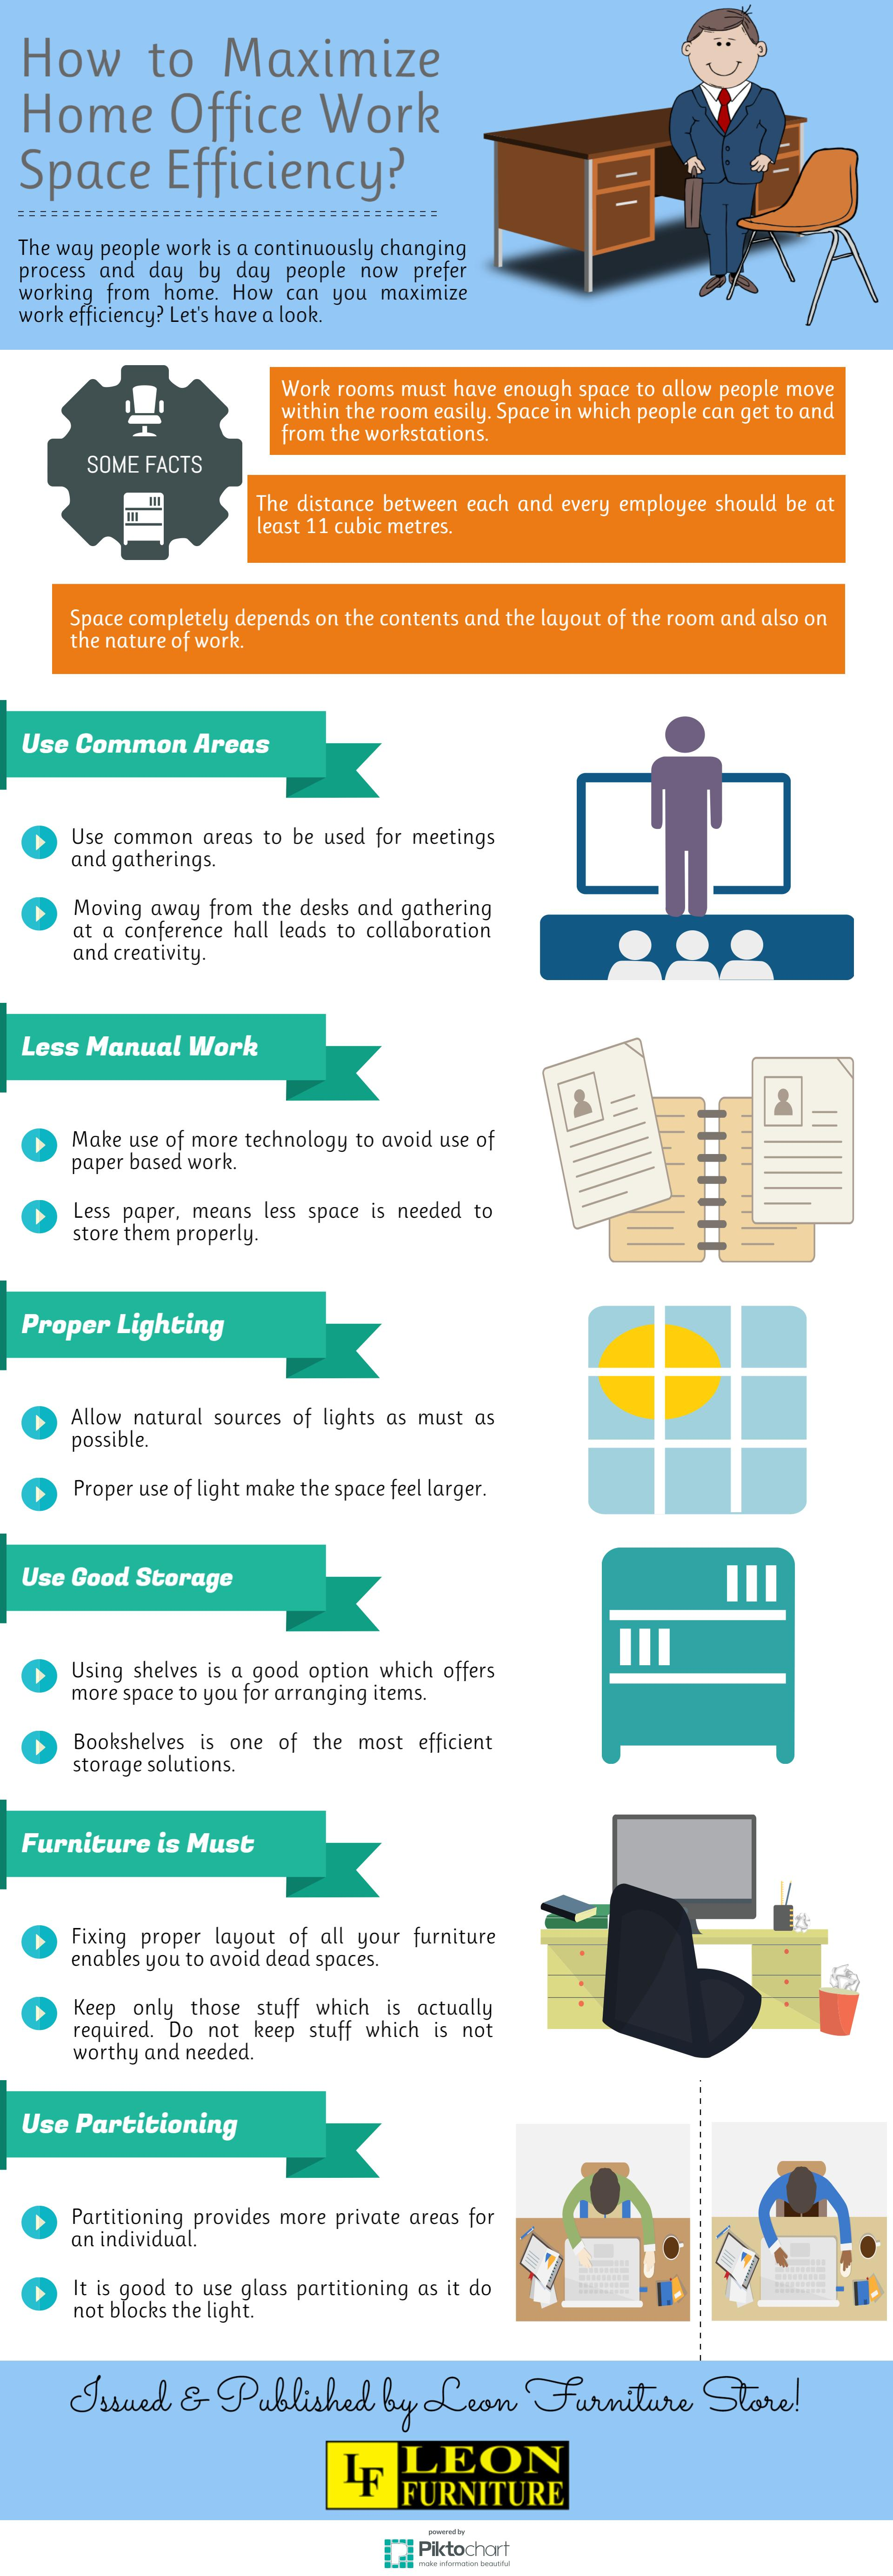 How to Maximize Home Office Work Space Efficiency? | Visual.ly